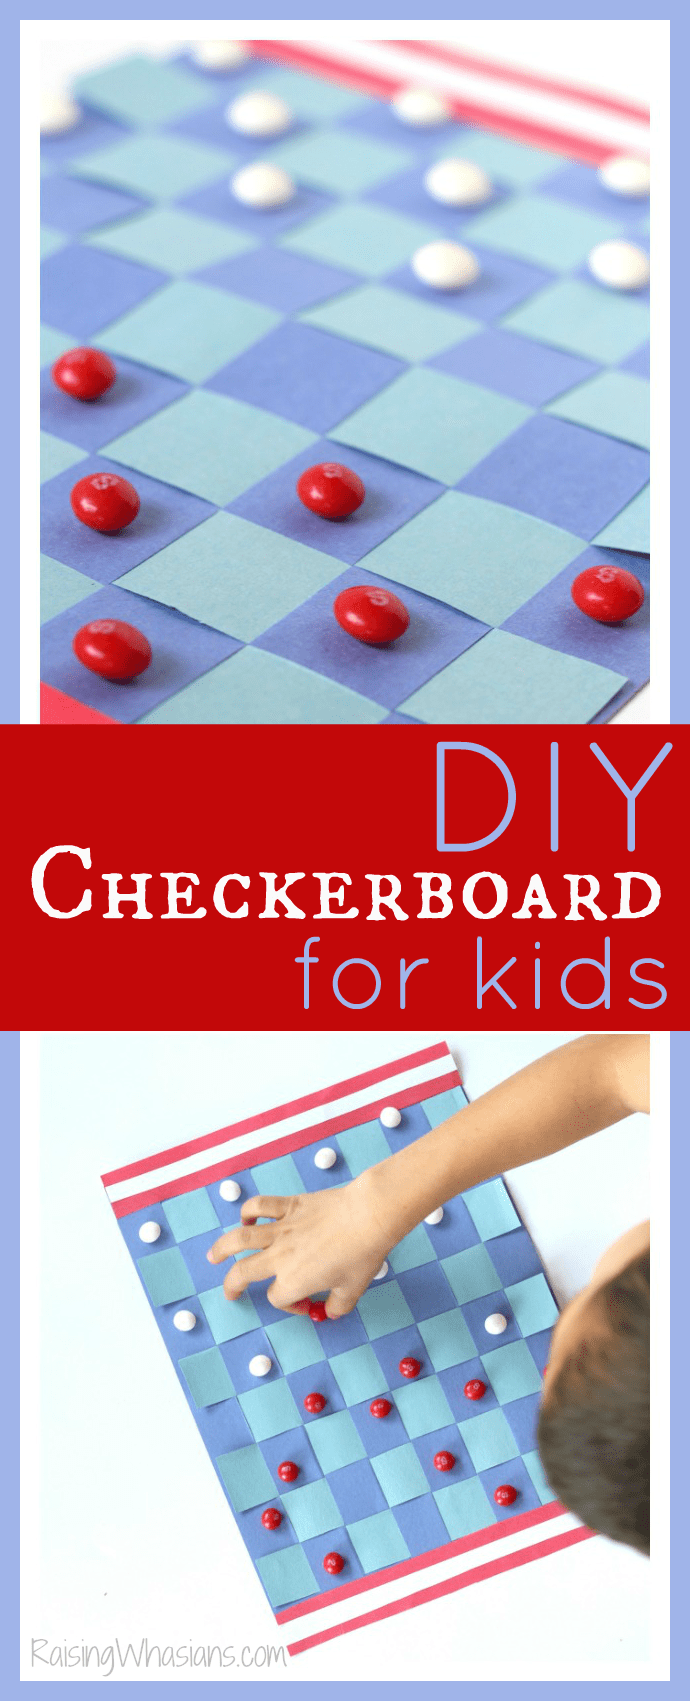 DIY checkerboard for kids pinterest